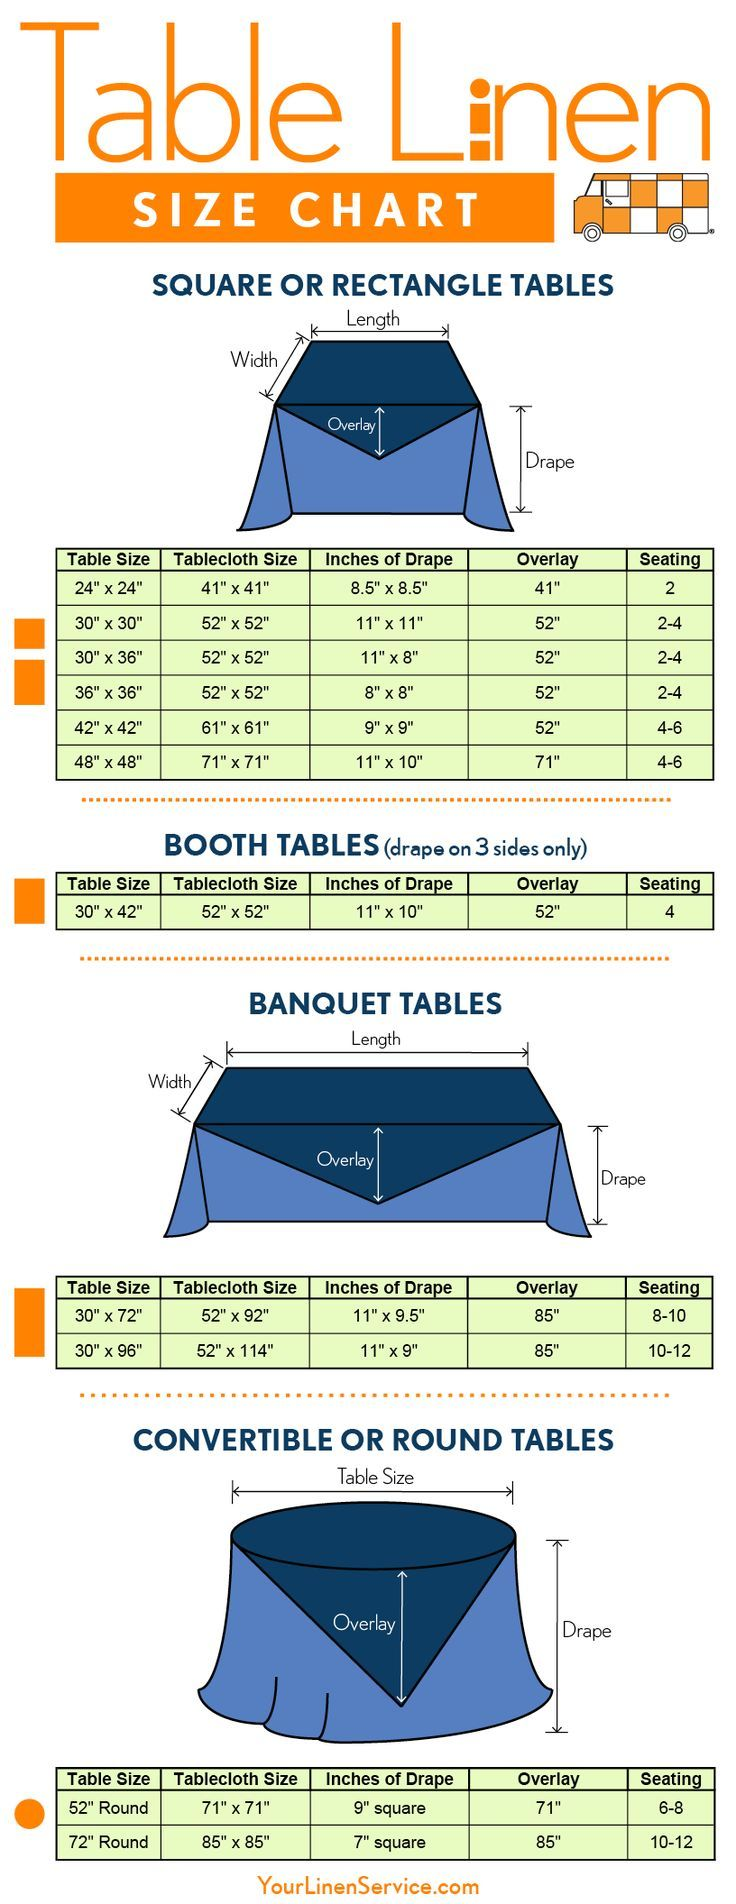 Table Linen Size Chart Square Rectangle Circle And Banquet Tablecloth Sizes Overlay